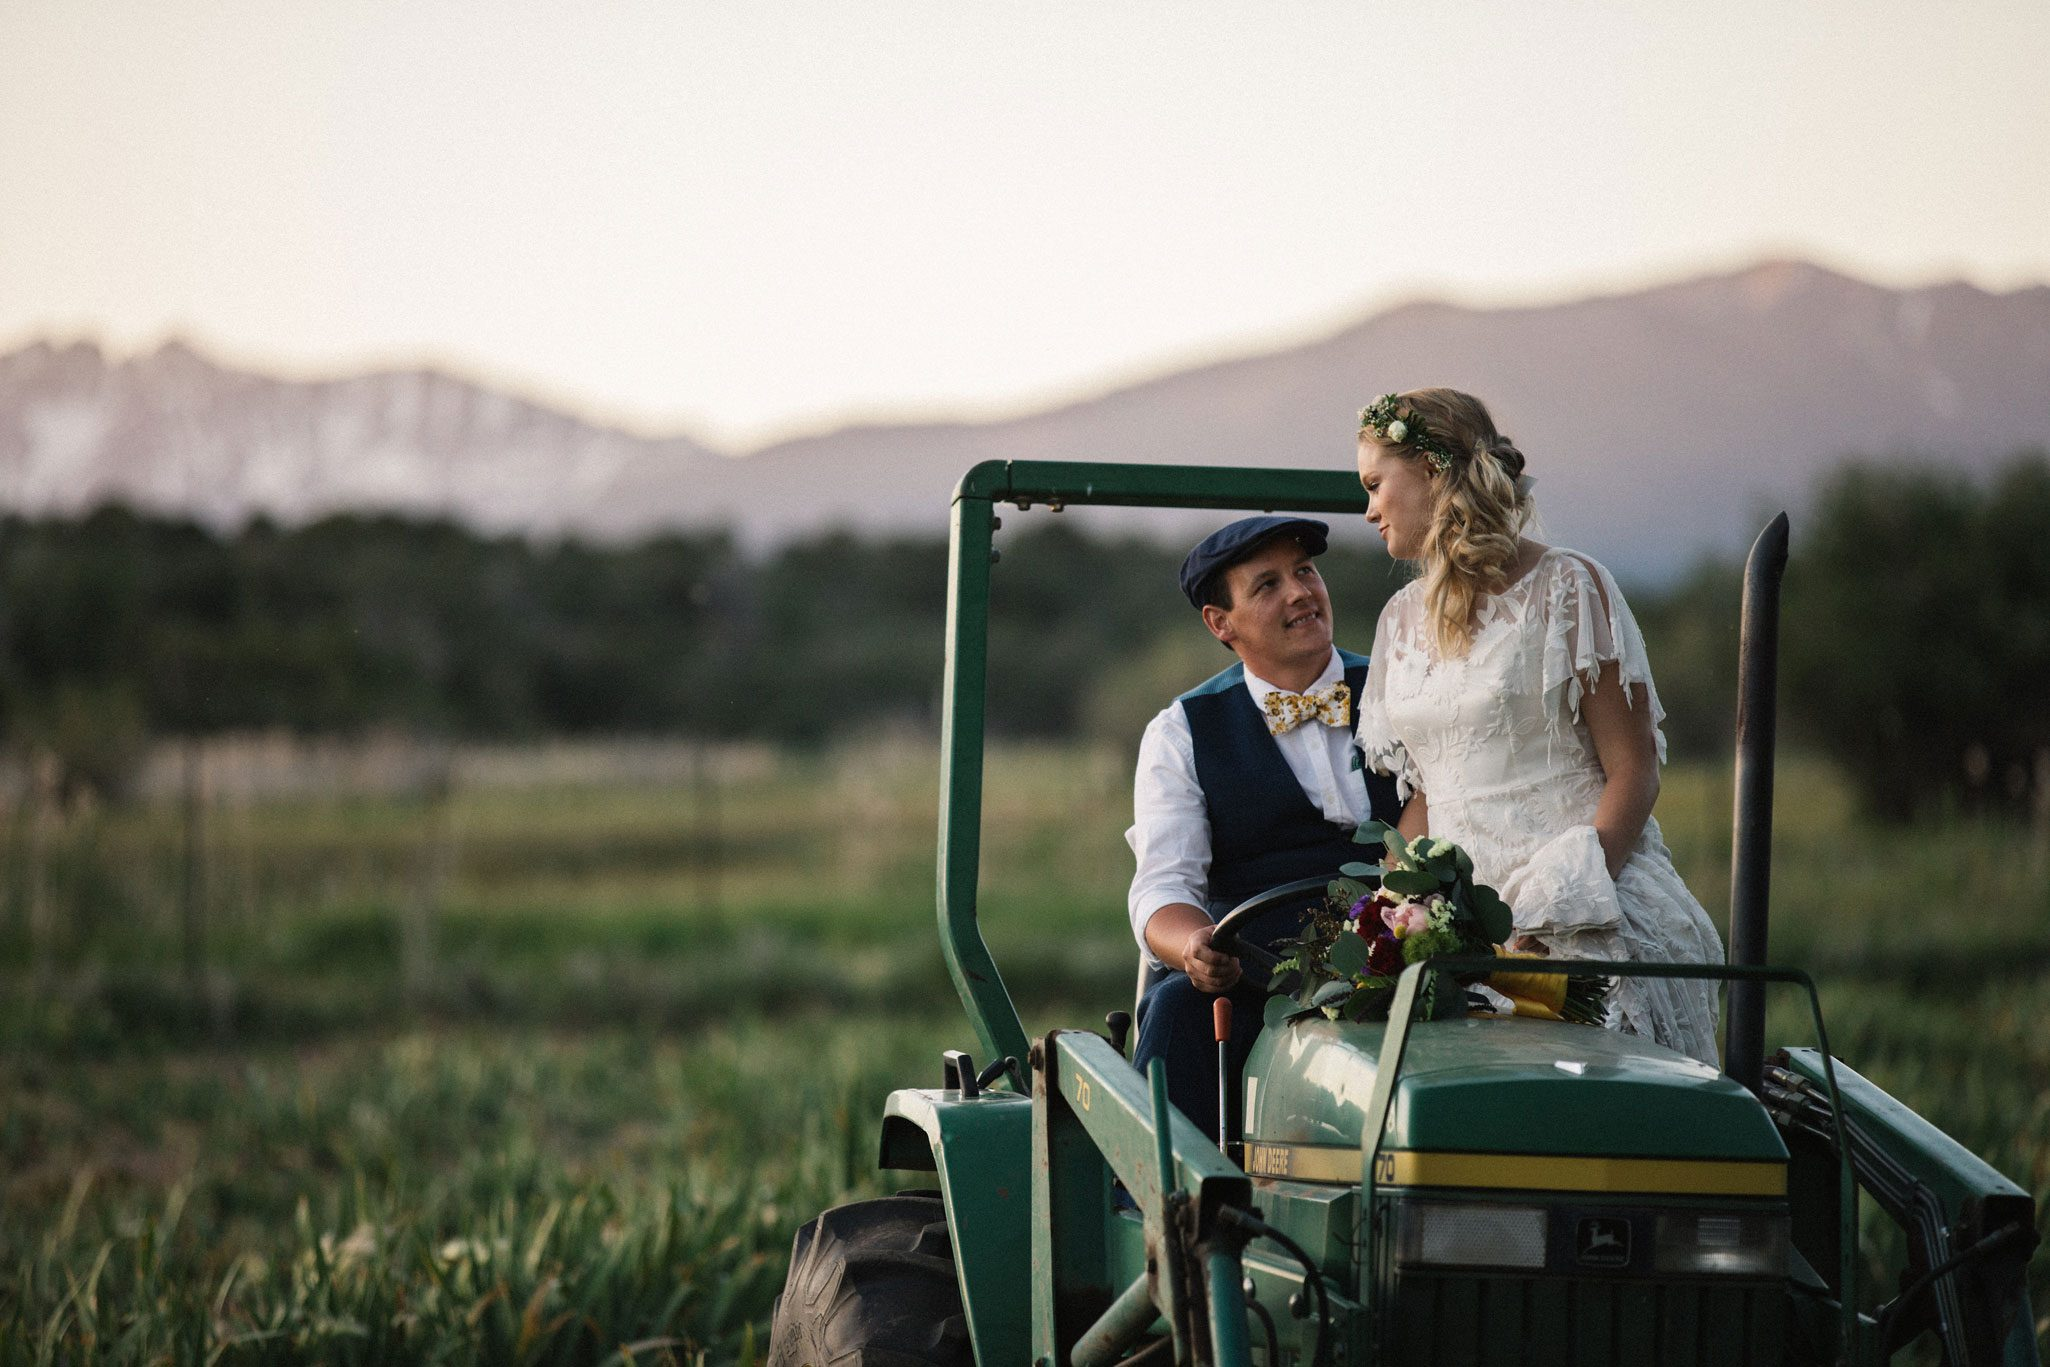 Bride & groom on a tractor at Ridgewood Event Center wedding, Durango, Colorado